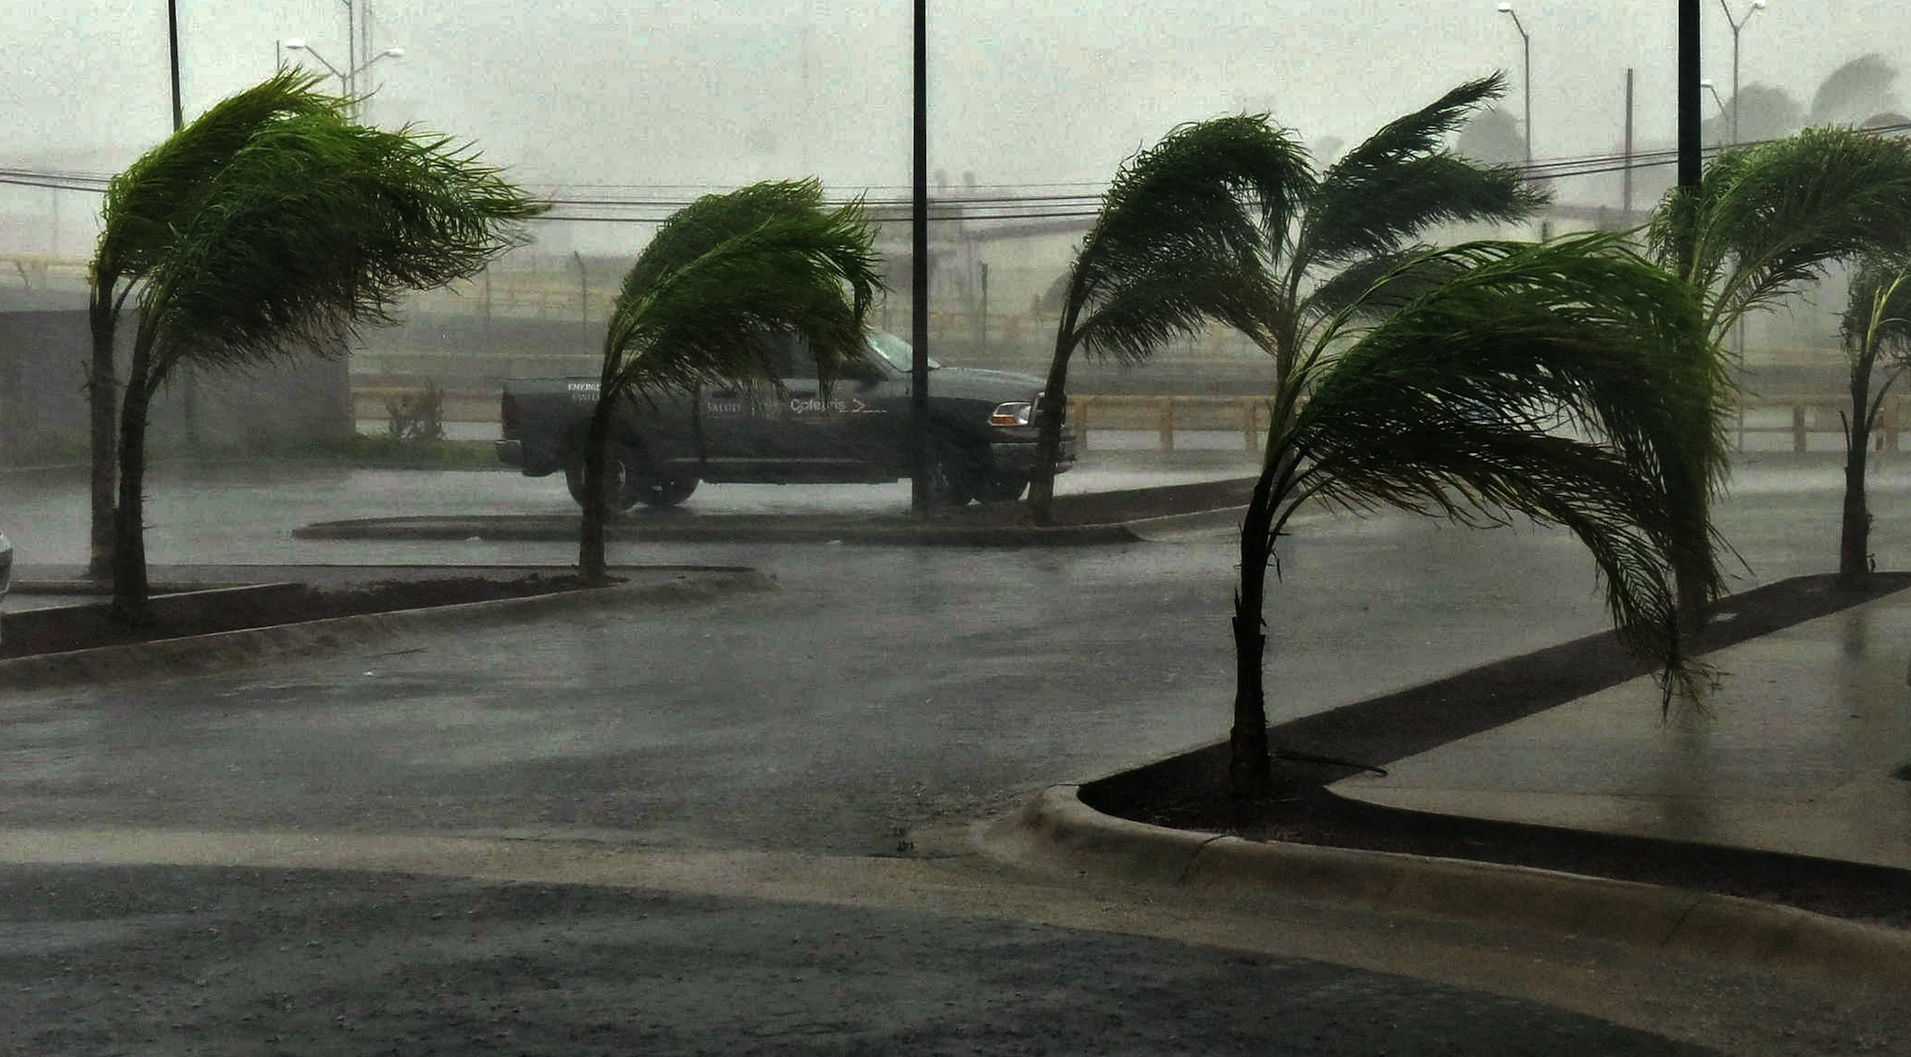 For Mexico, Hurricane Patricia hit just the right spot